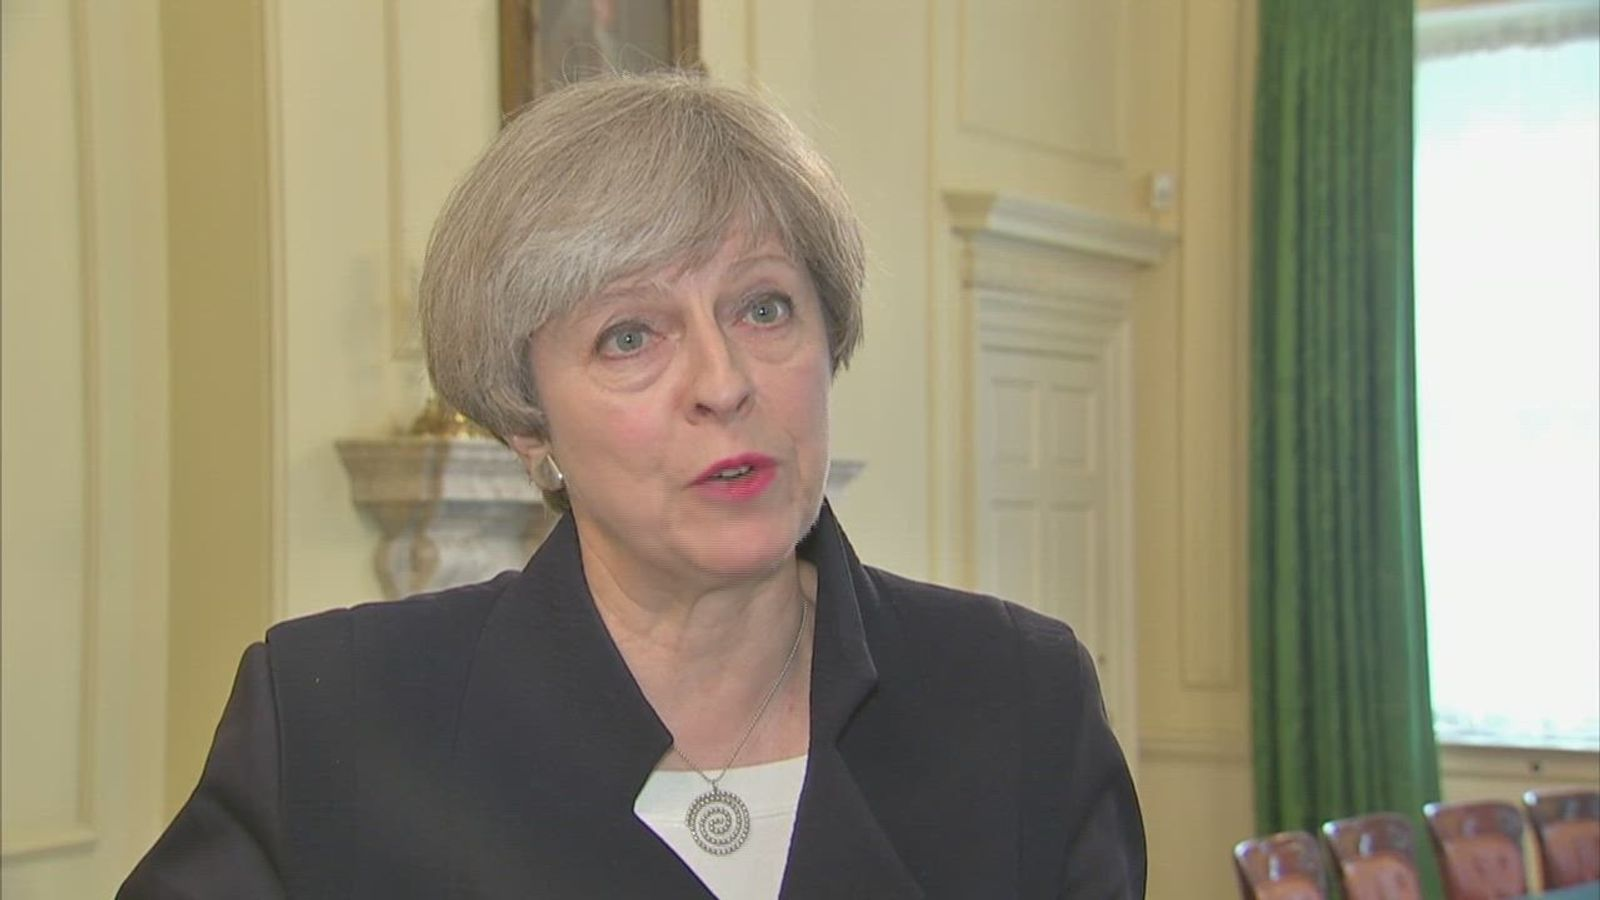 Theresa May, Jeremy Corbyn to face questions on live TV